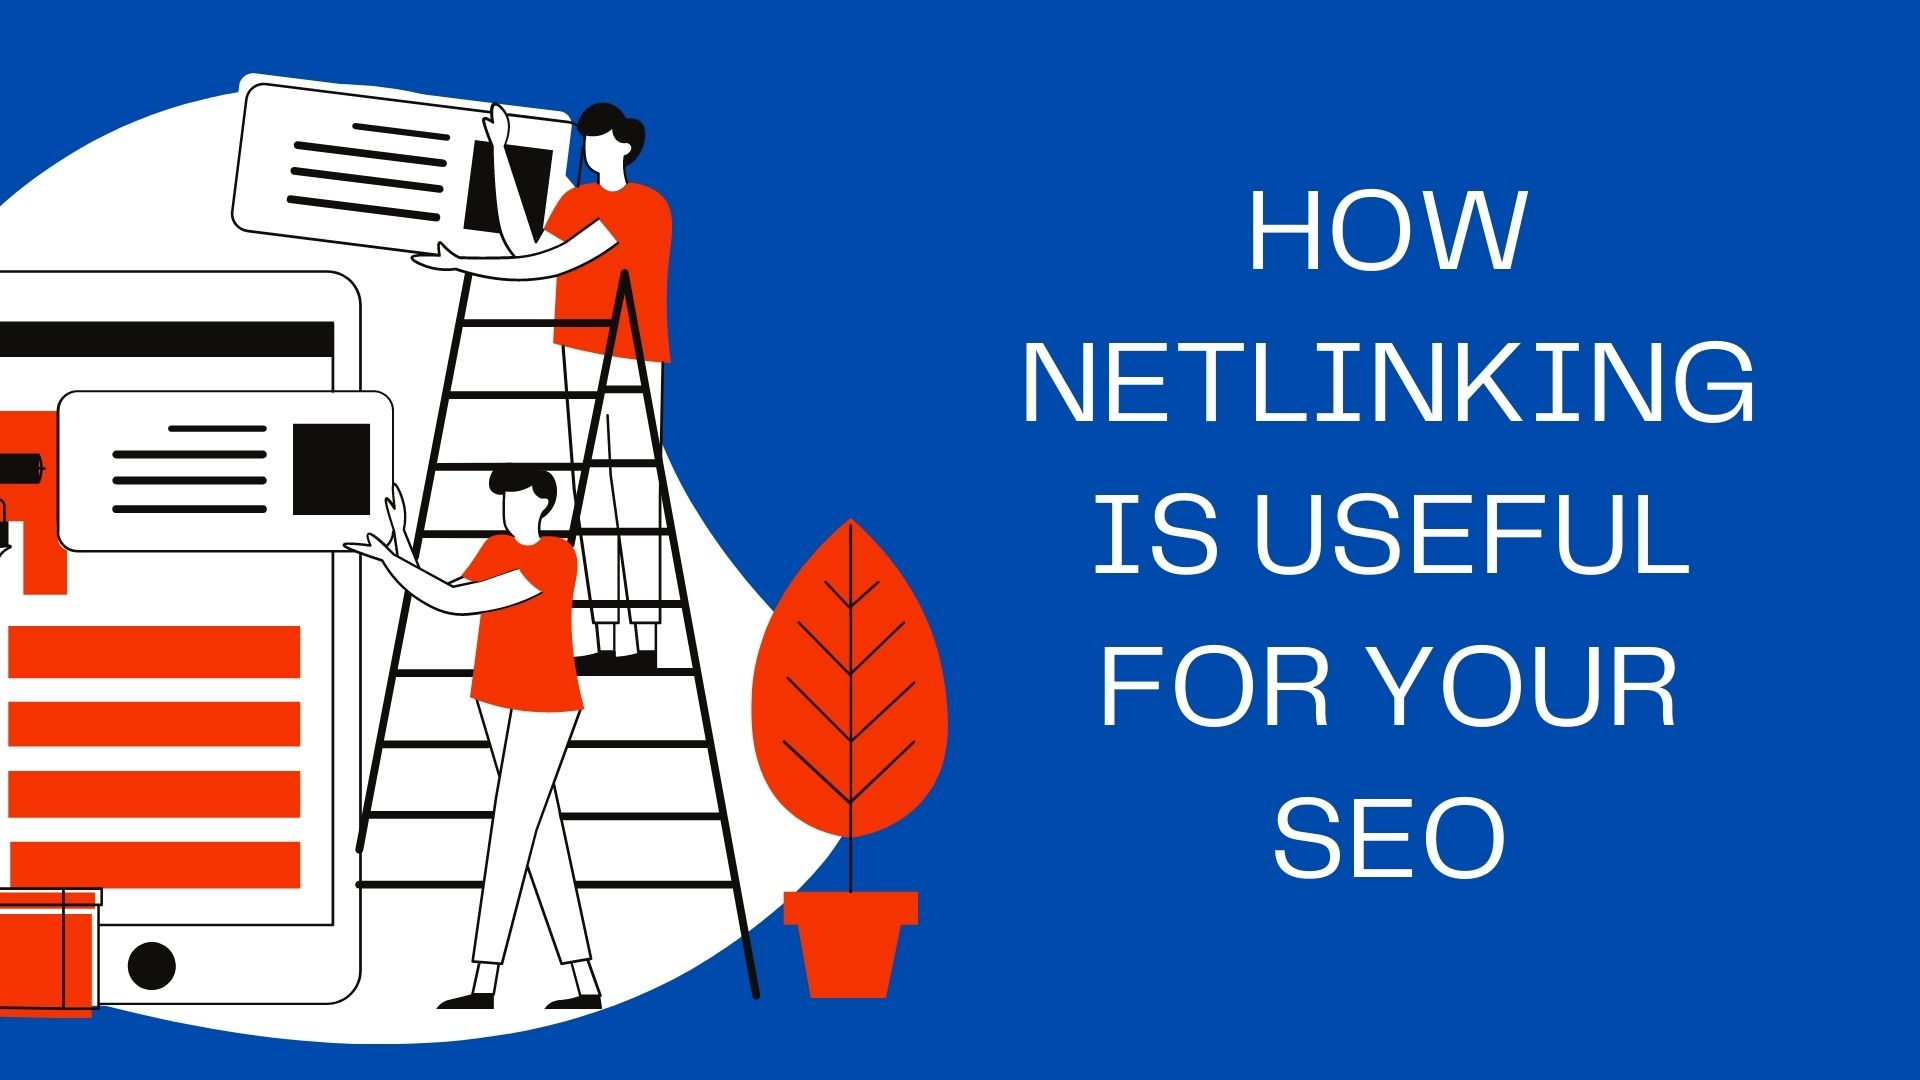 How Netlinking Is Useful for Your SEO